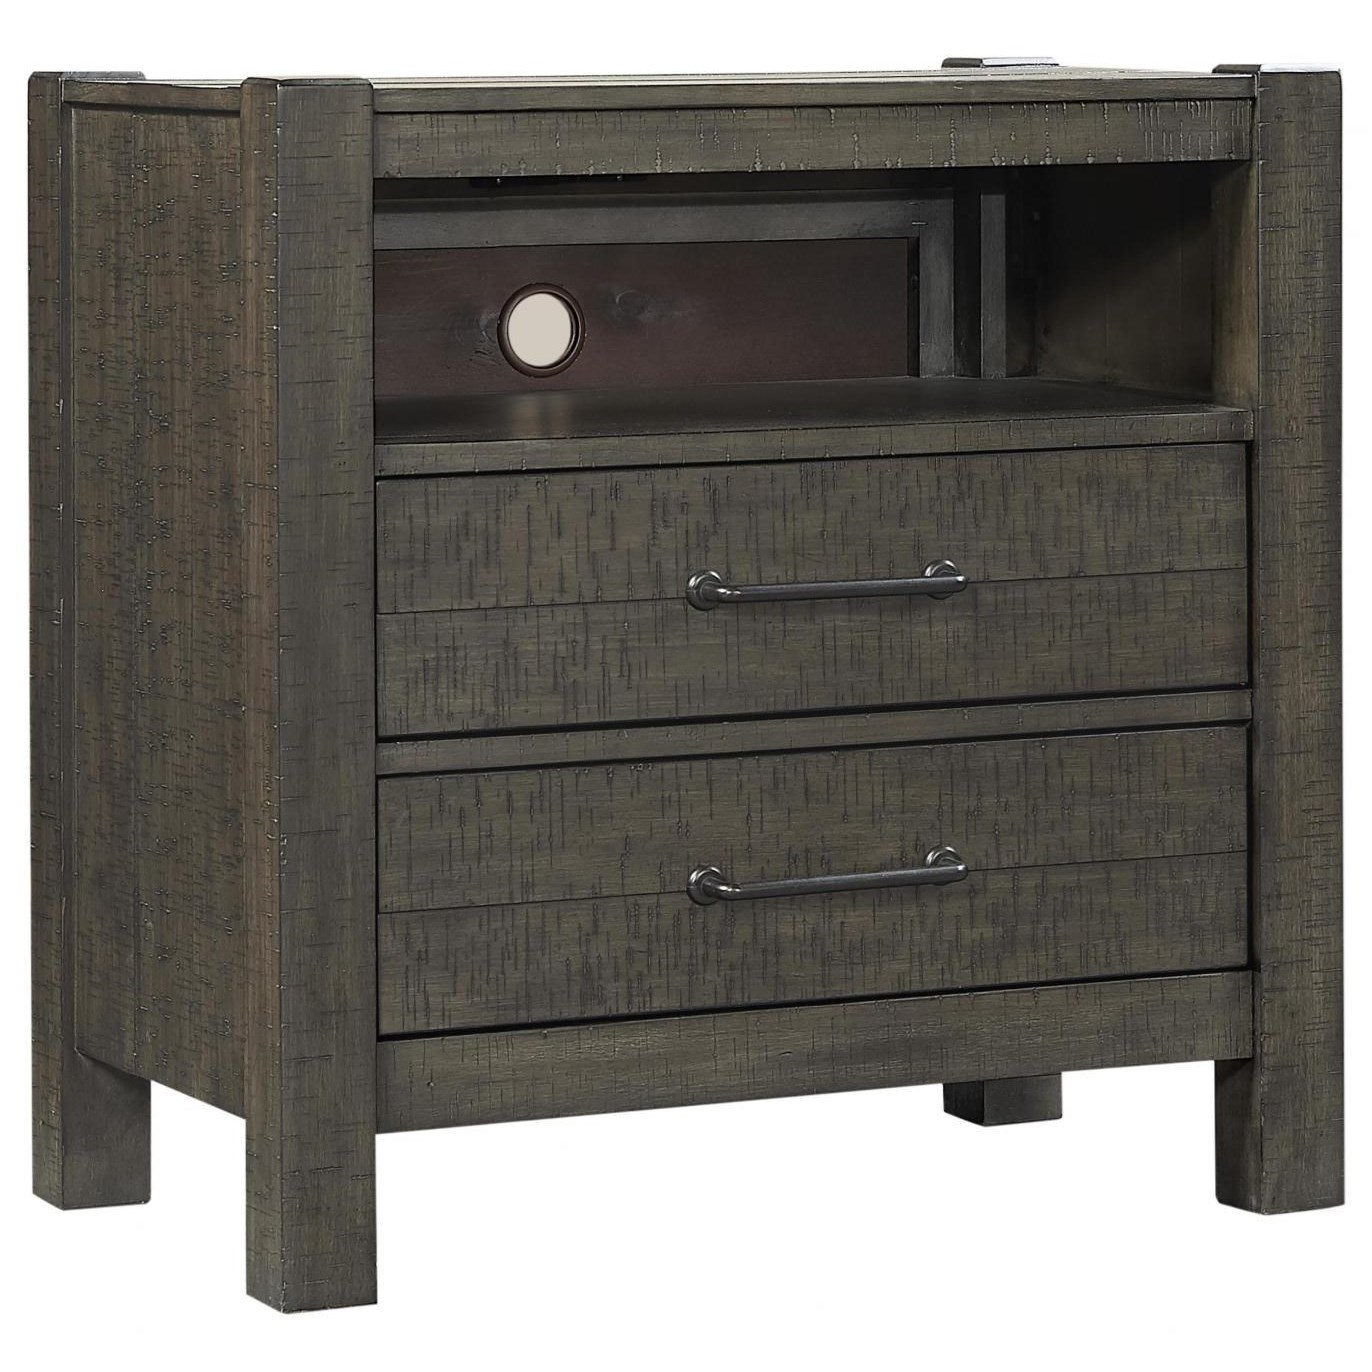 Mill Creek 2 Drawer Nightstand by Aspenhome at Stoney Creek Furniture